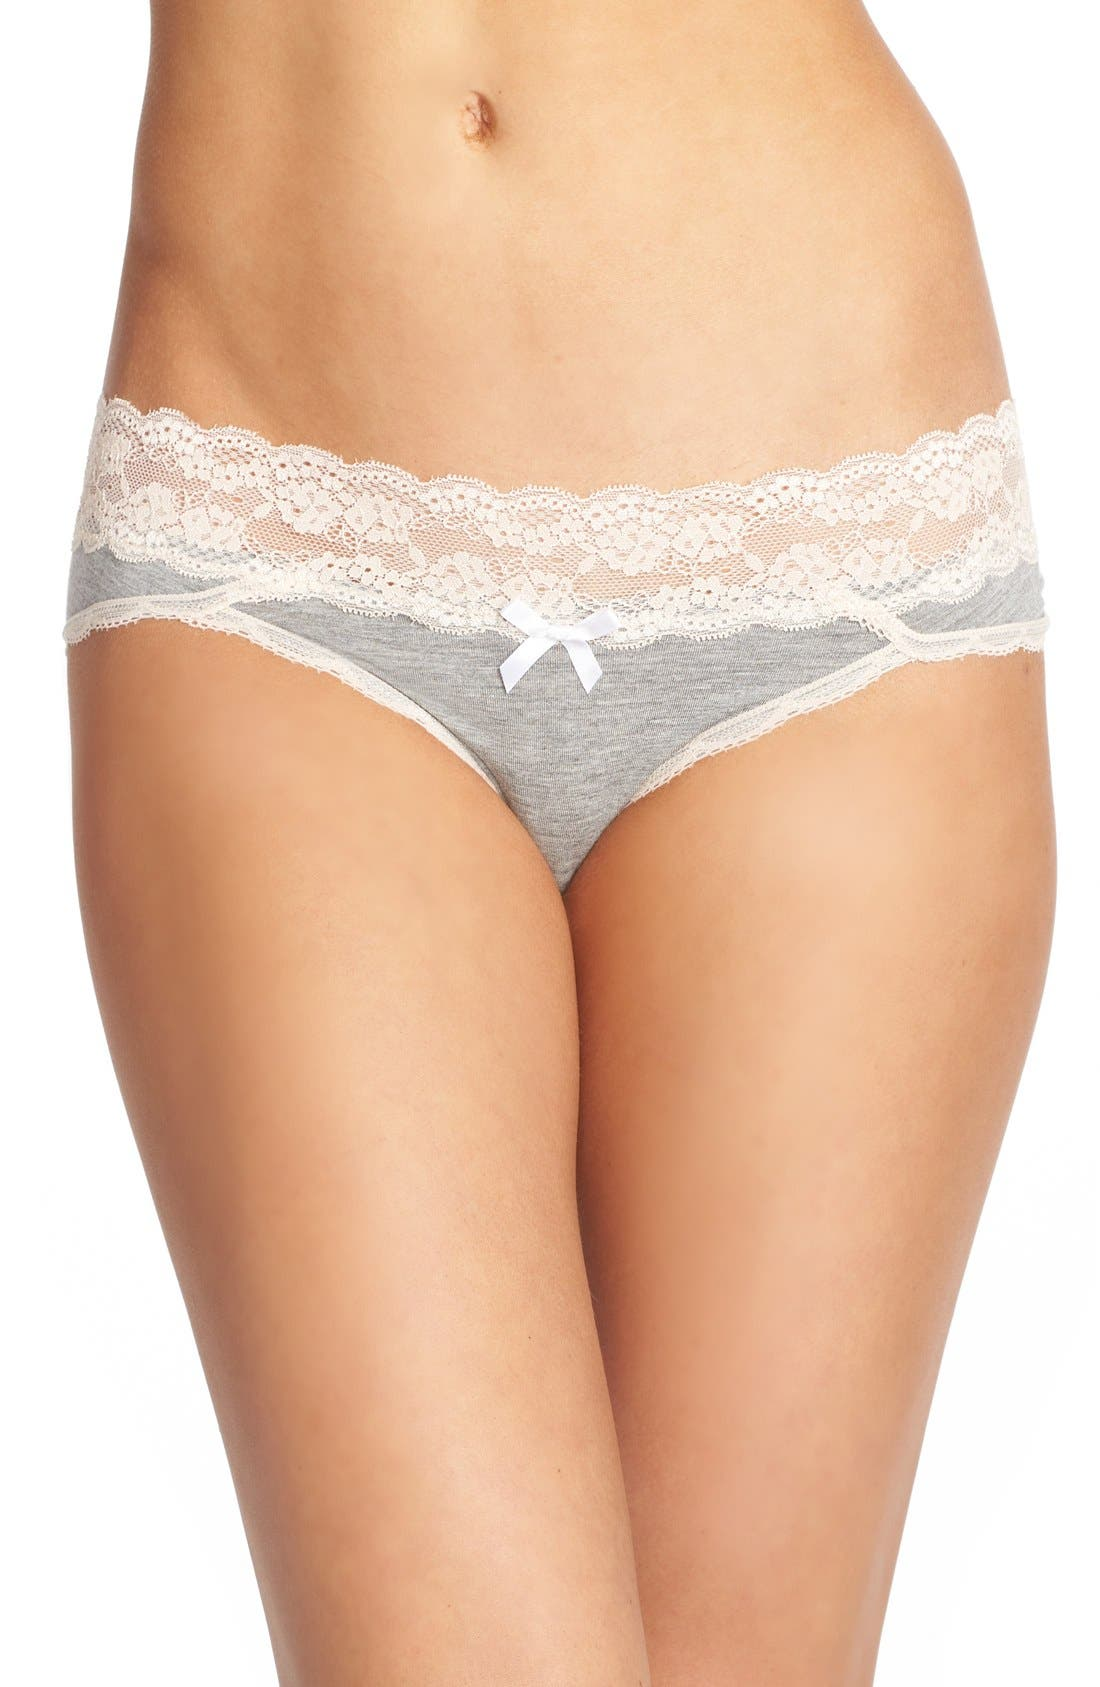 A waistband of scalloped floral lace tops a soft, stretchy hipster with more lace trimming the leg openings. Style Name: Honeydew Intimates Ahna Hipster Panties. Style Number: 528846. Available in stores.